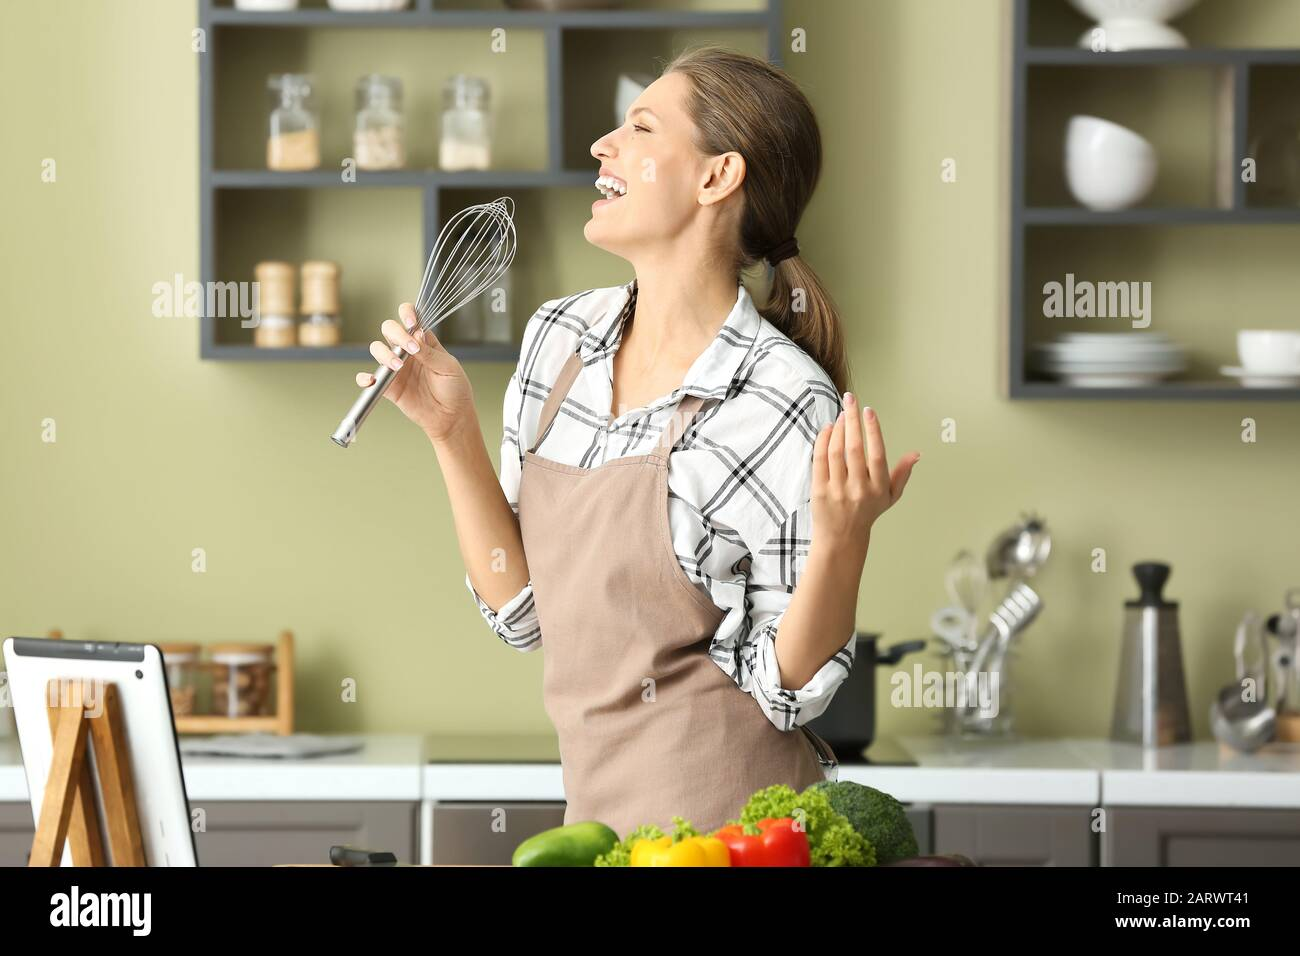 Cook Singing Cooking In Kitchen High Resolution Stock Photography And Images Alamy